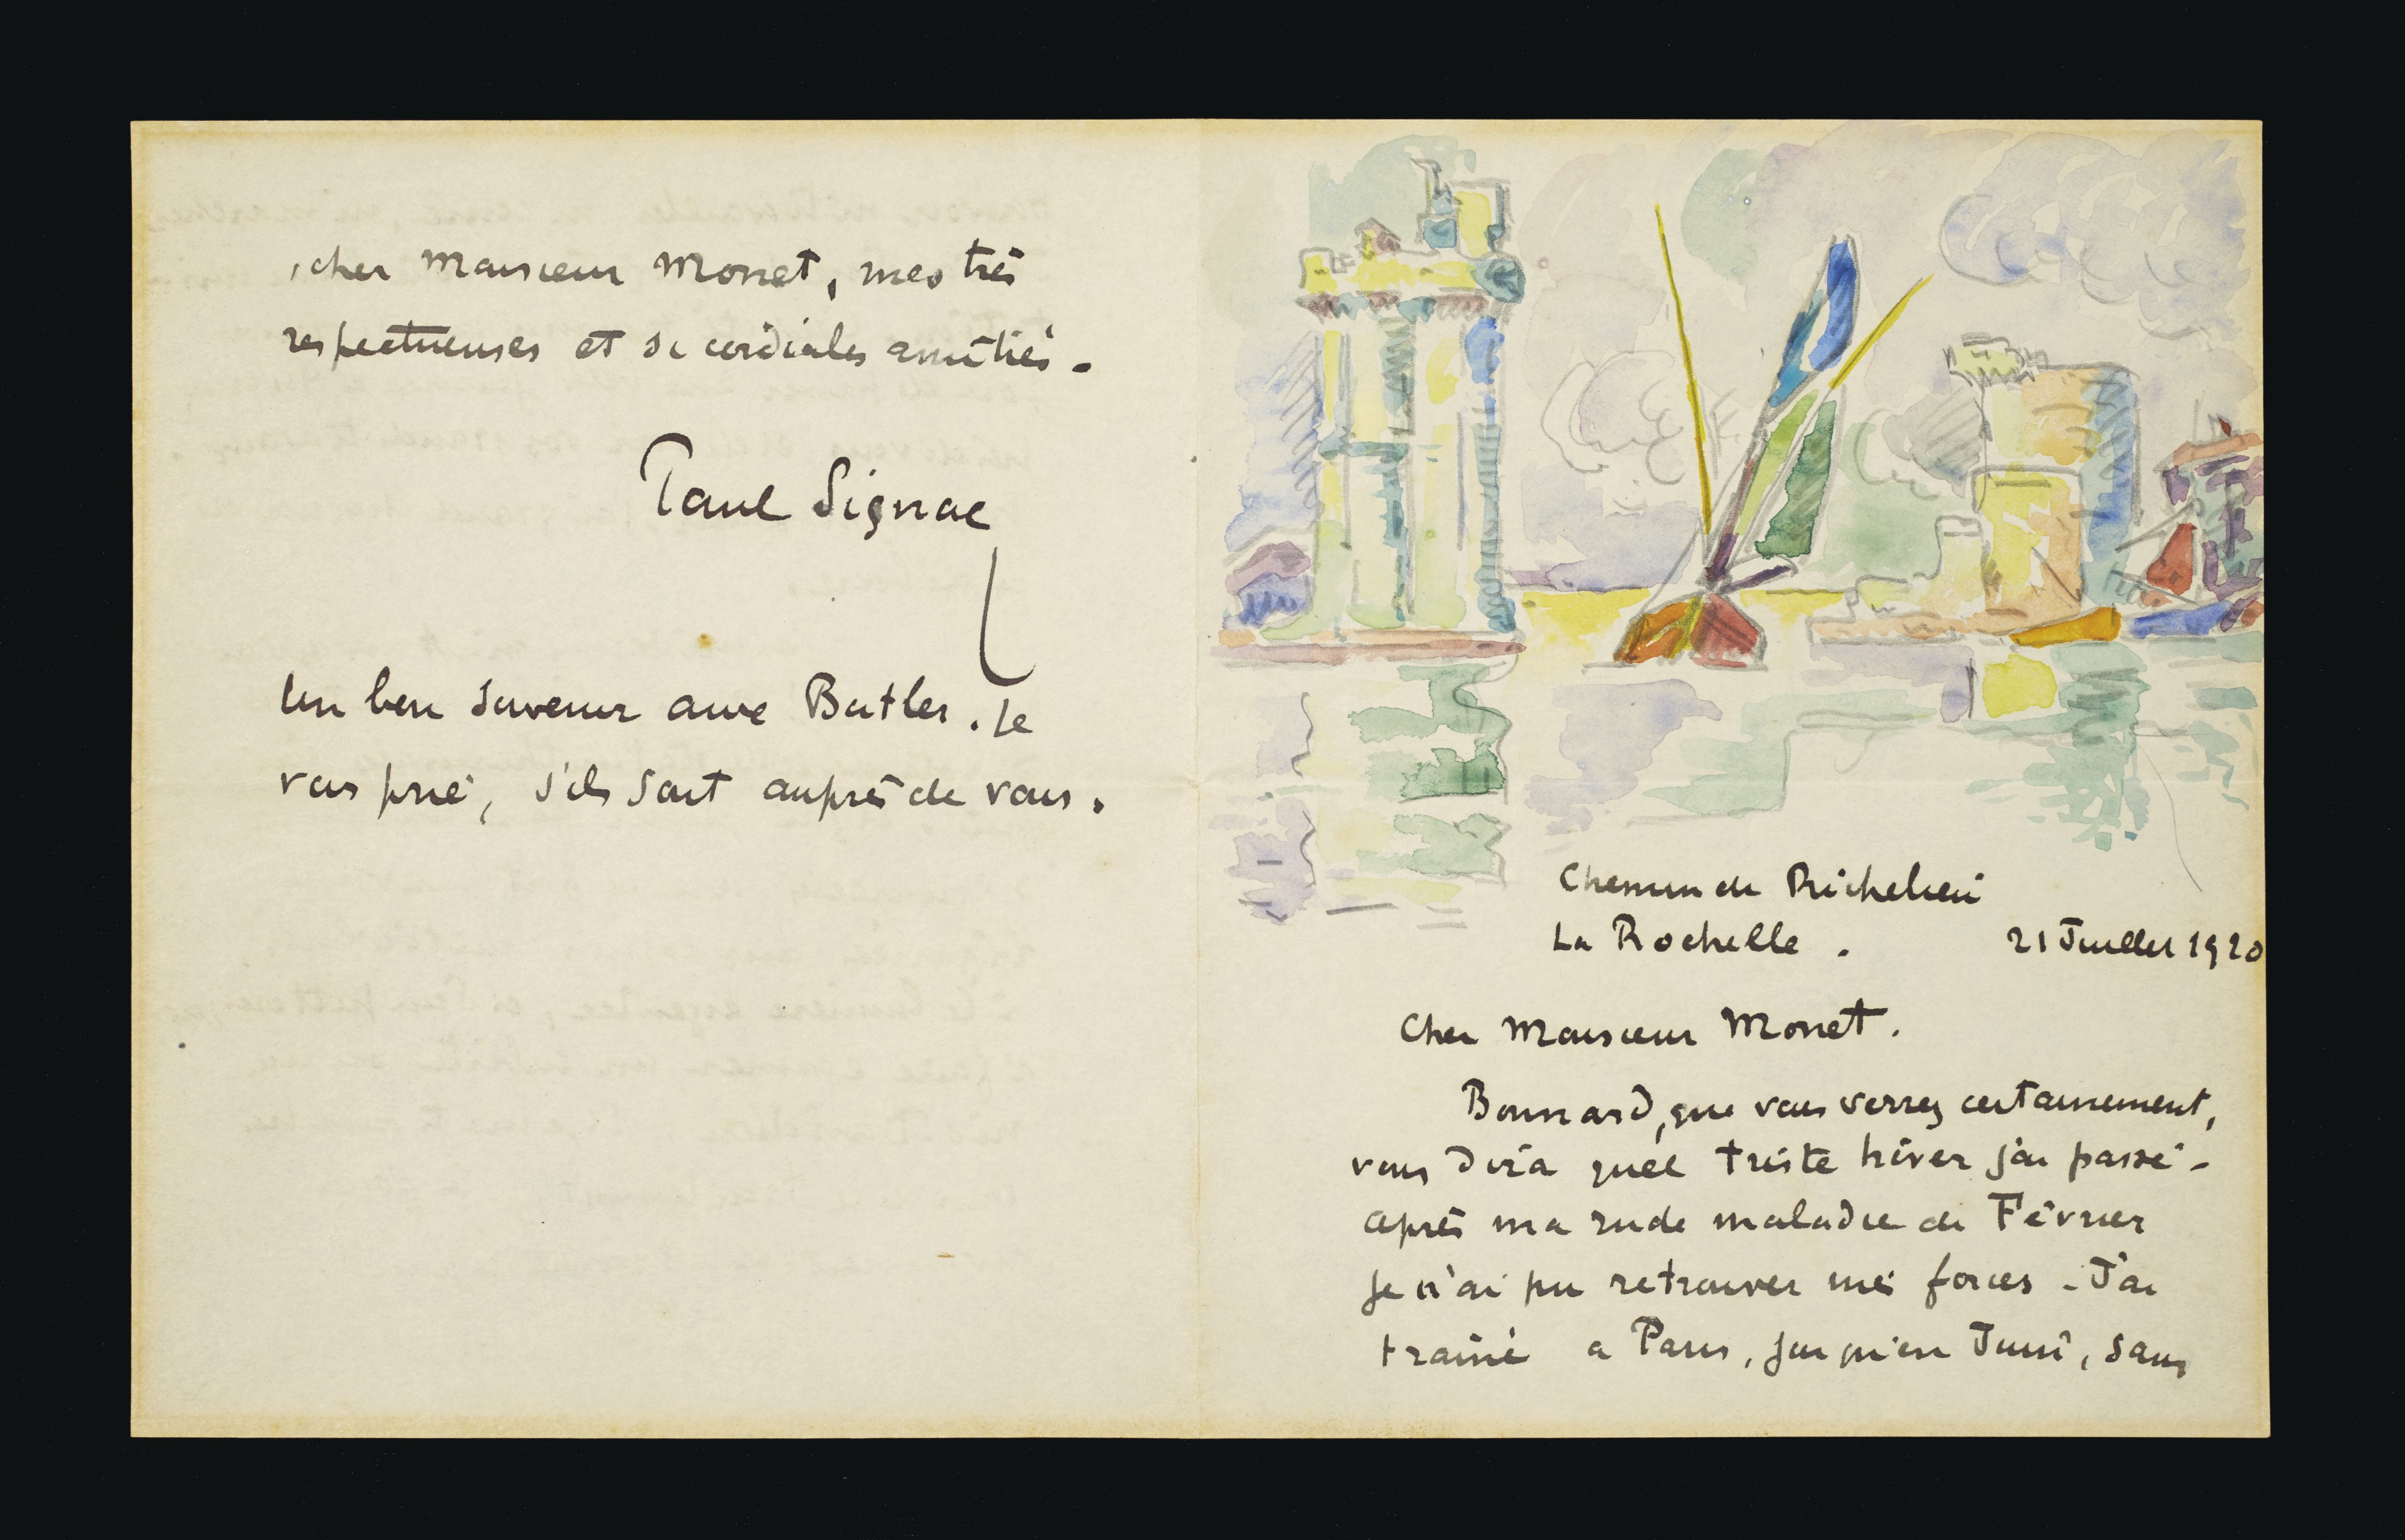 "Lot 25: Paul Signac (1863-1935), Letter to Claude Monet. Dated, located and dedicated ""Chemin de Richelieu La Rochelle. 21 Juillet 1920 Cher Monsieur Monet."" Signed ""Paul Signac."" Executed in La Rochelle, 21 July 1920. Estimate: $50,000 - $100,000. ©Christie's Images Ltd, 2017."